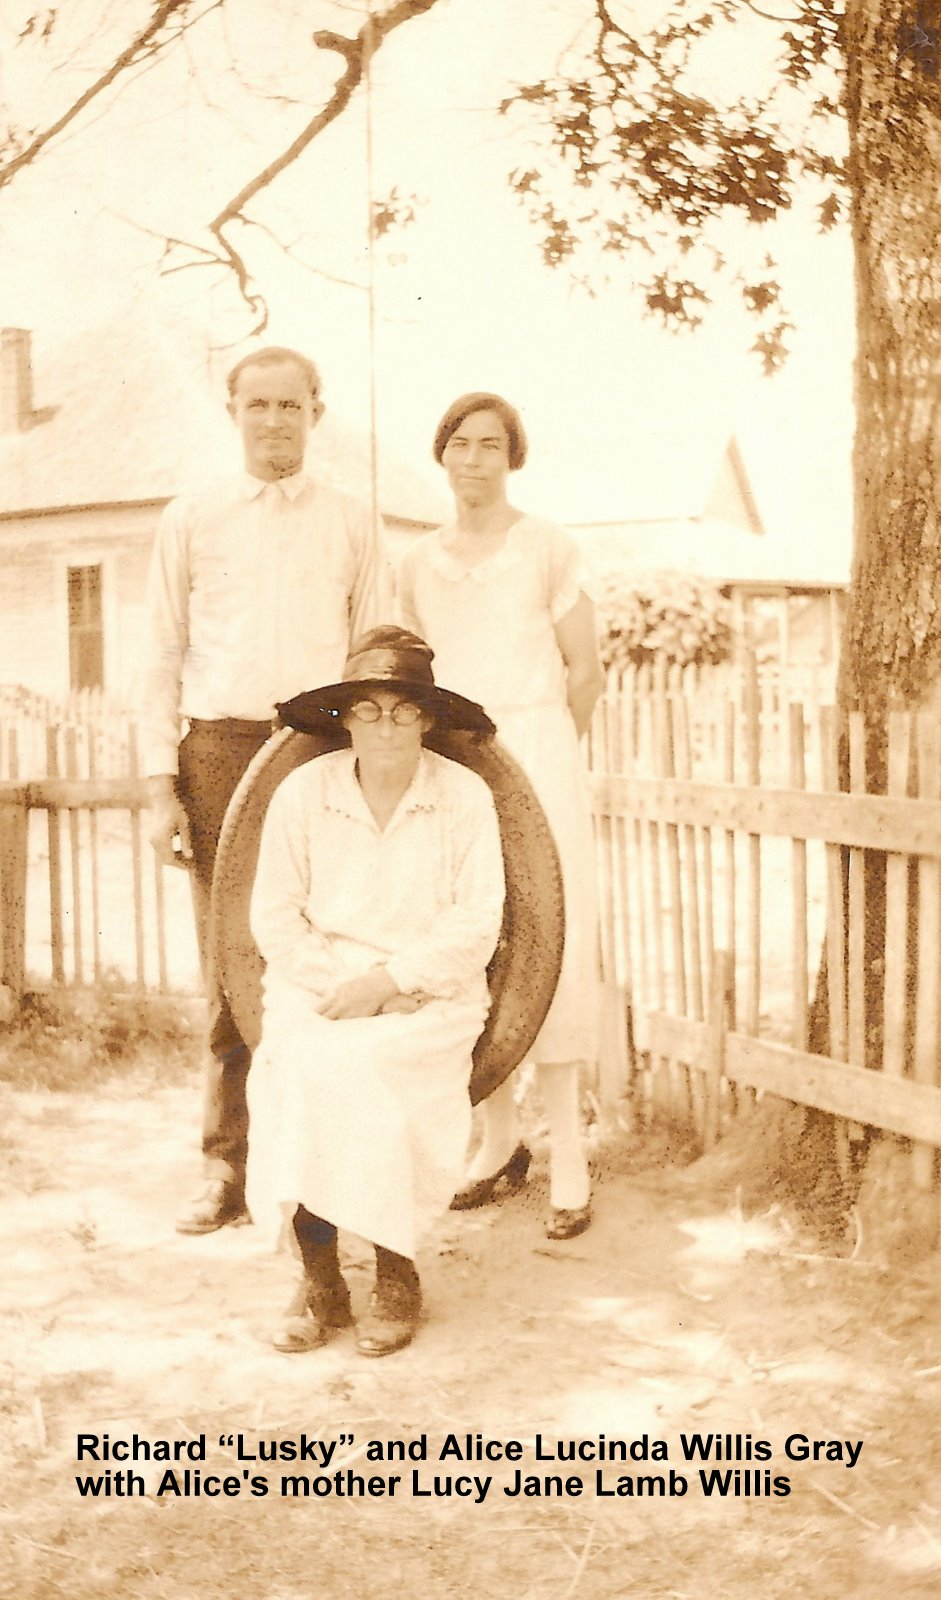 Great Grandmother Lucy Jane Lamb Willis with Richard Lusky Gray & Alice Lucinda Willis Gray